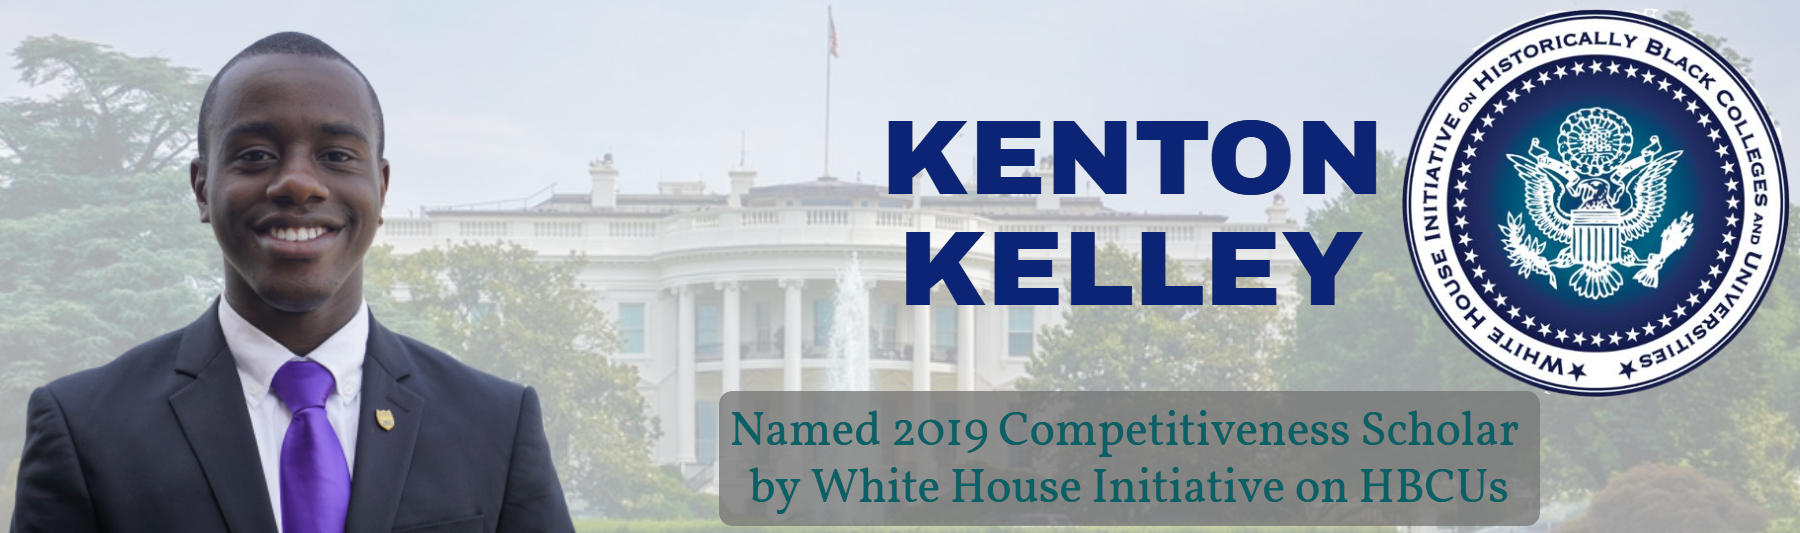 Kelley named 2019 HBCU Competitiveness Scholar by White House Initiative on Historically Black Colleges and Universities.